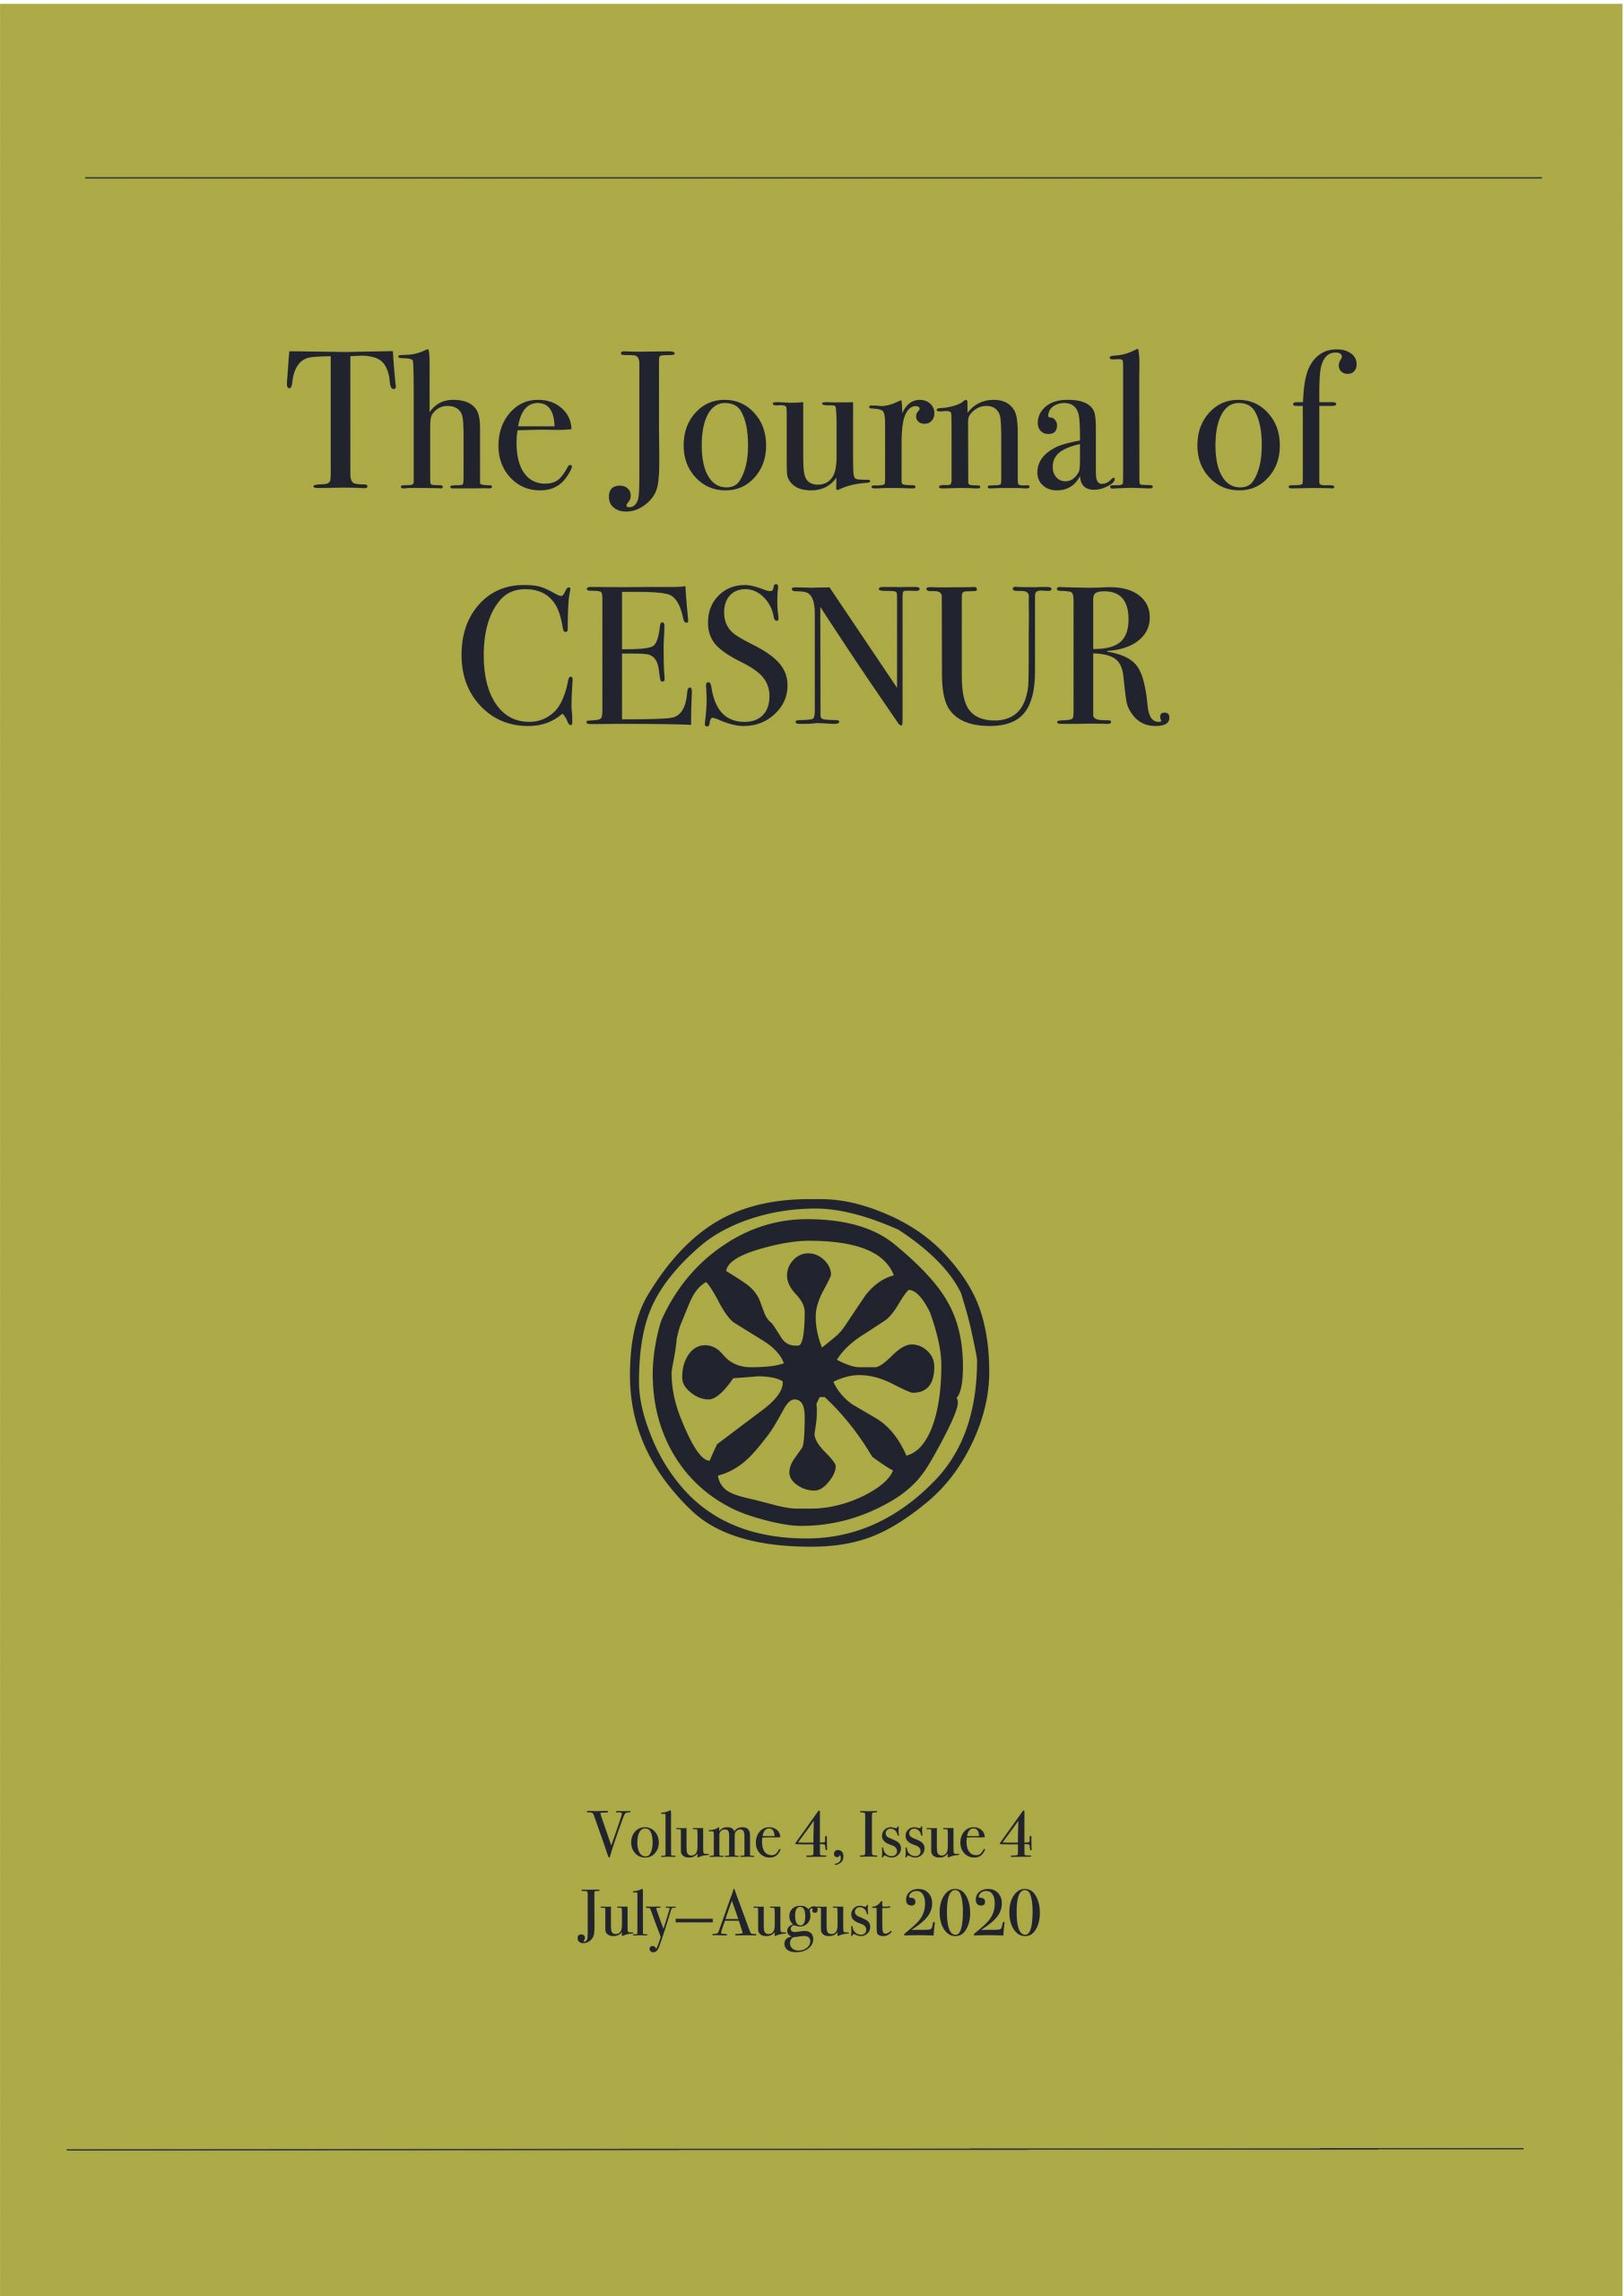 The Journal of CESNUR, volume 4, issue 4